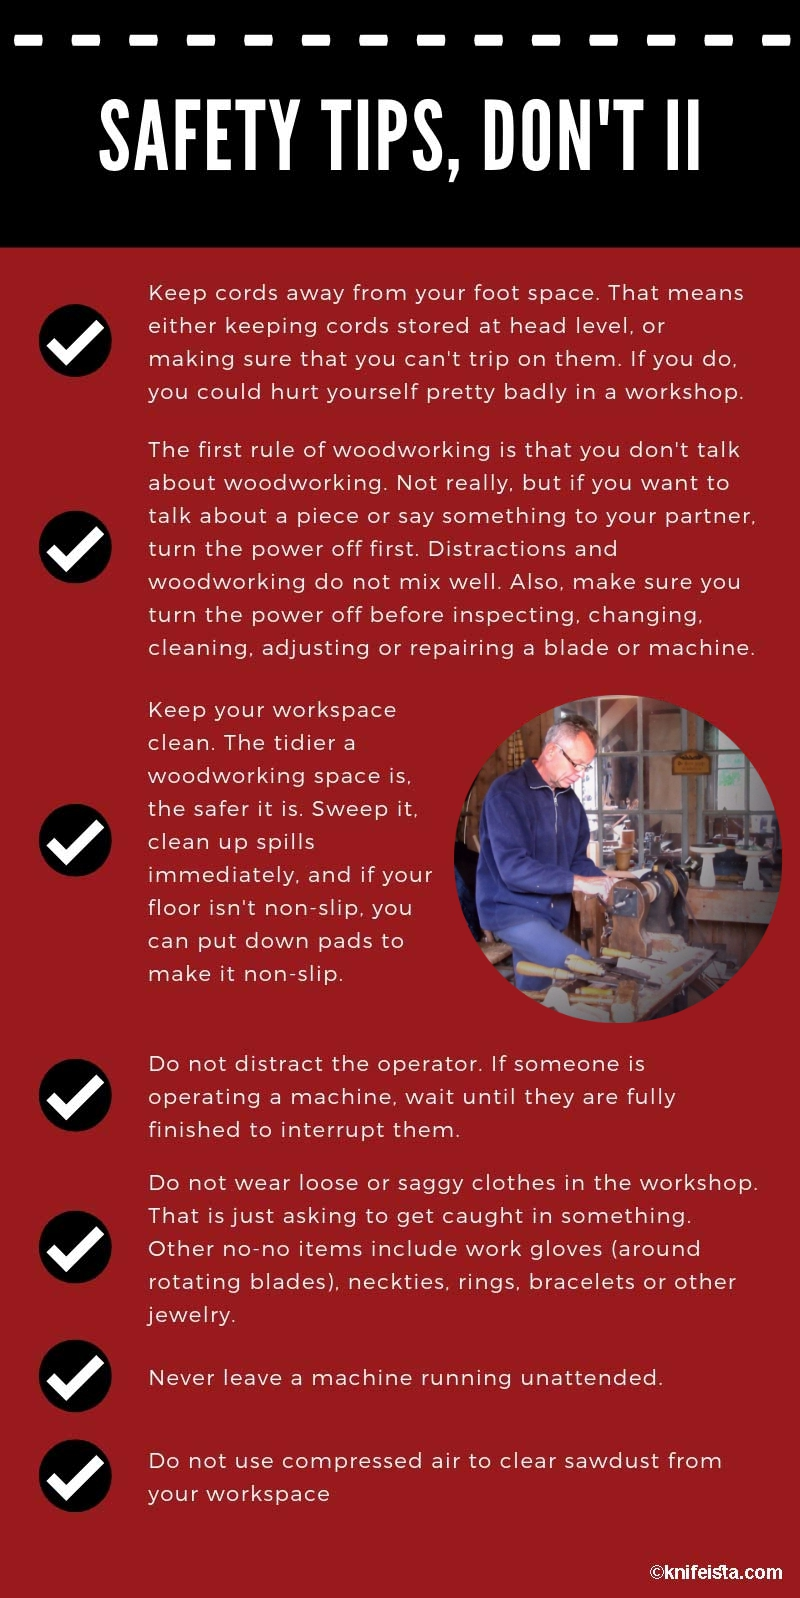 saftey tips infographic